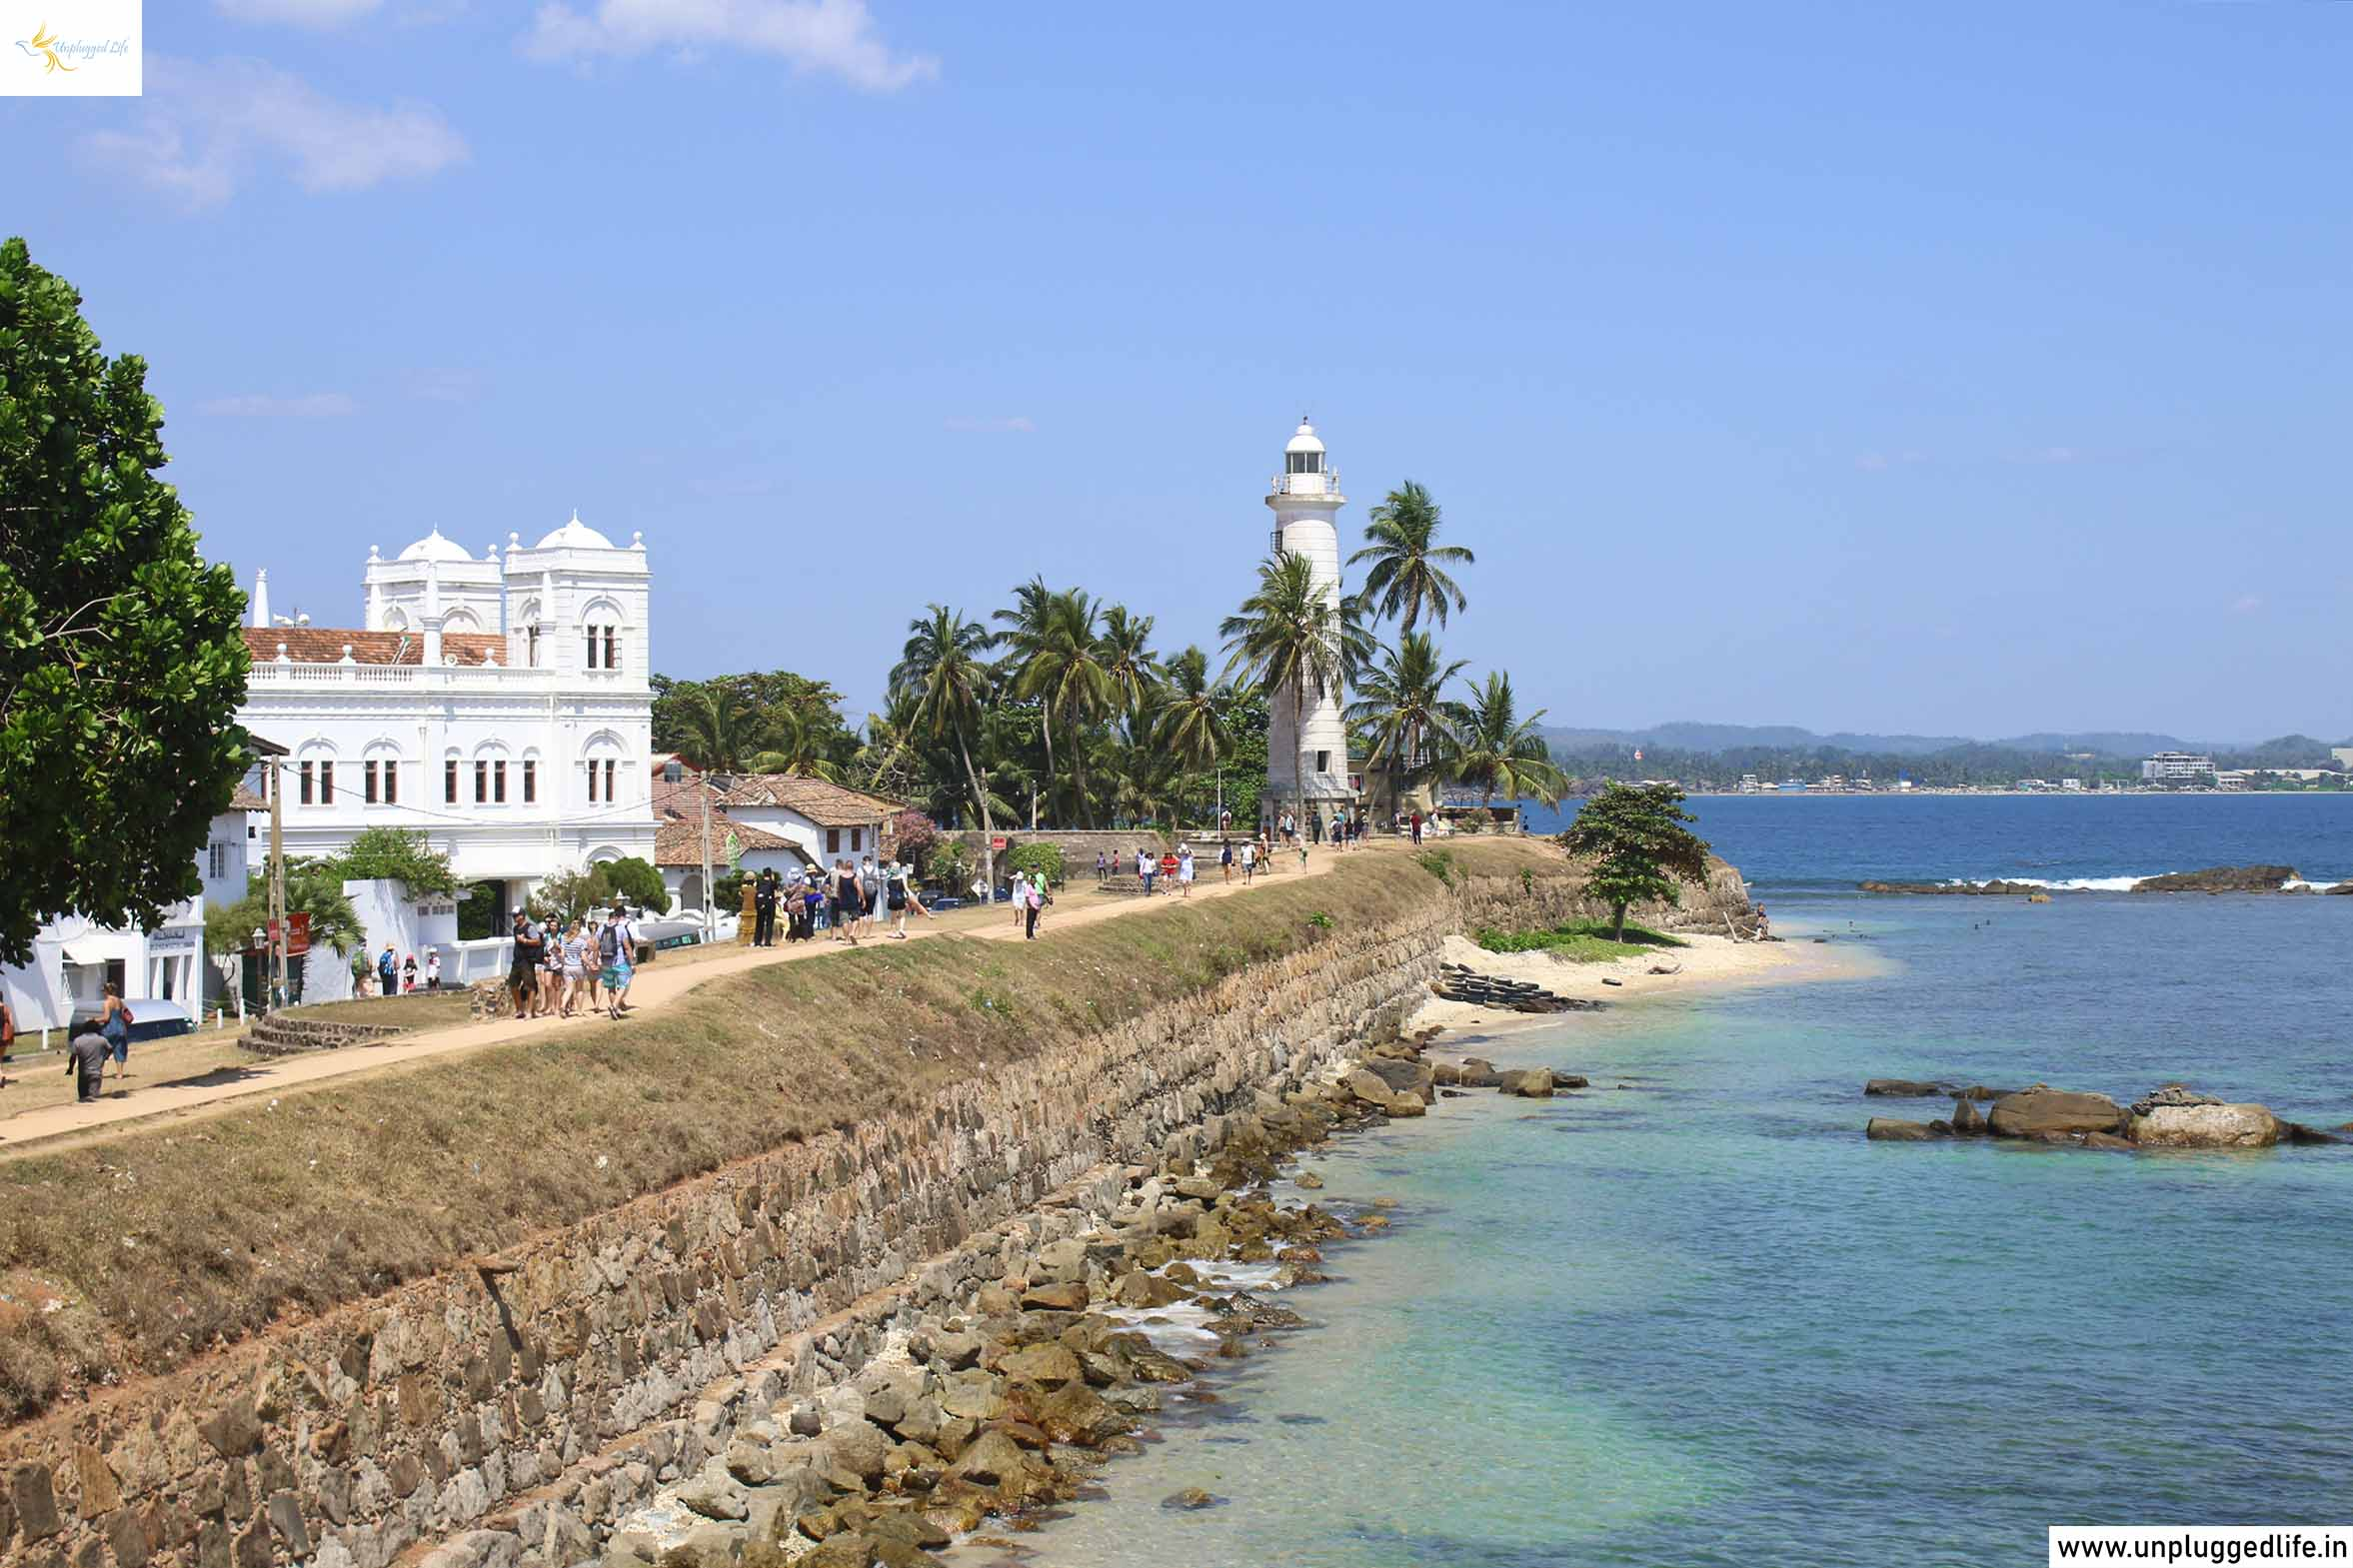 Galle Fort, Sri Lanka, Unplugged Life, Indian Ocean, Laccadive Sea, Light House